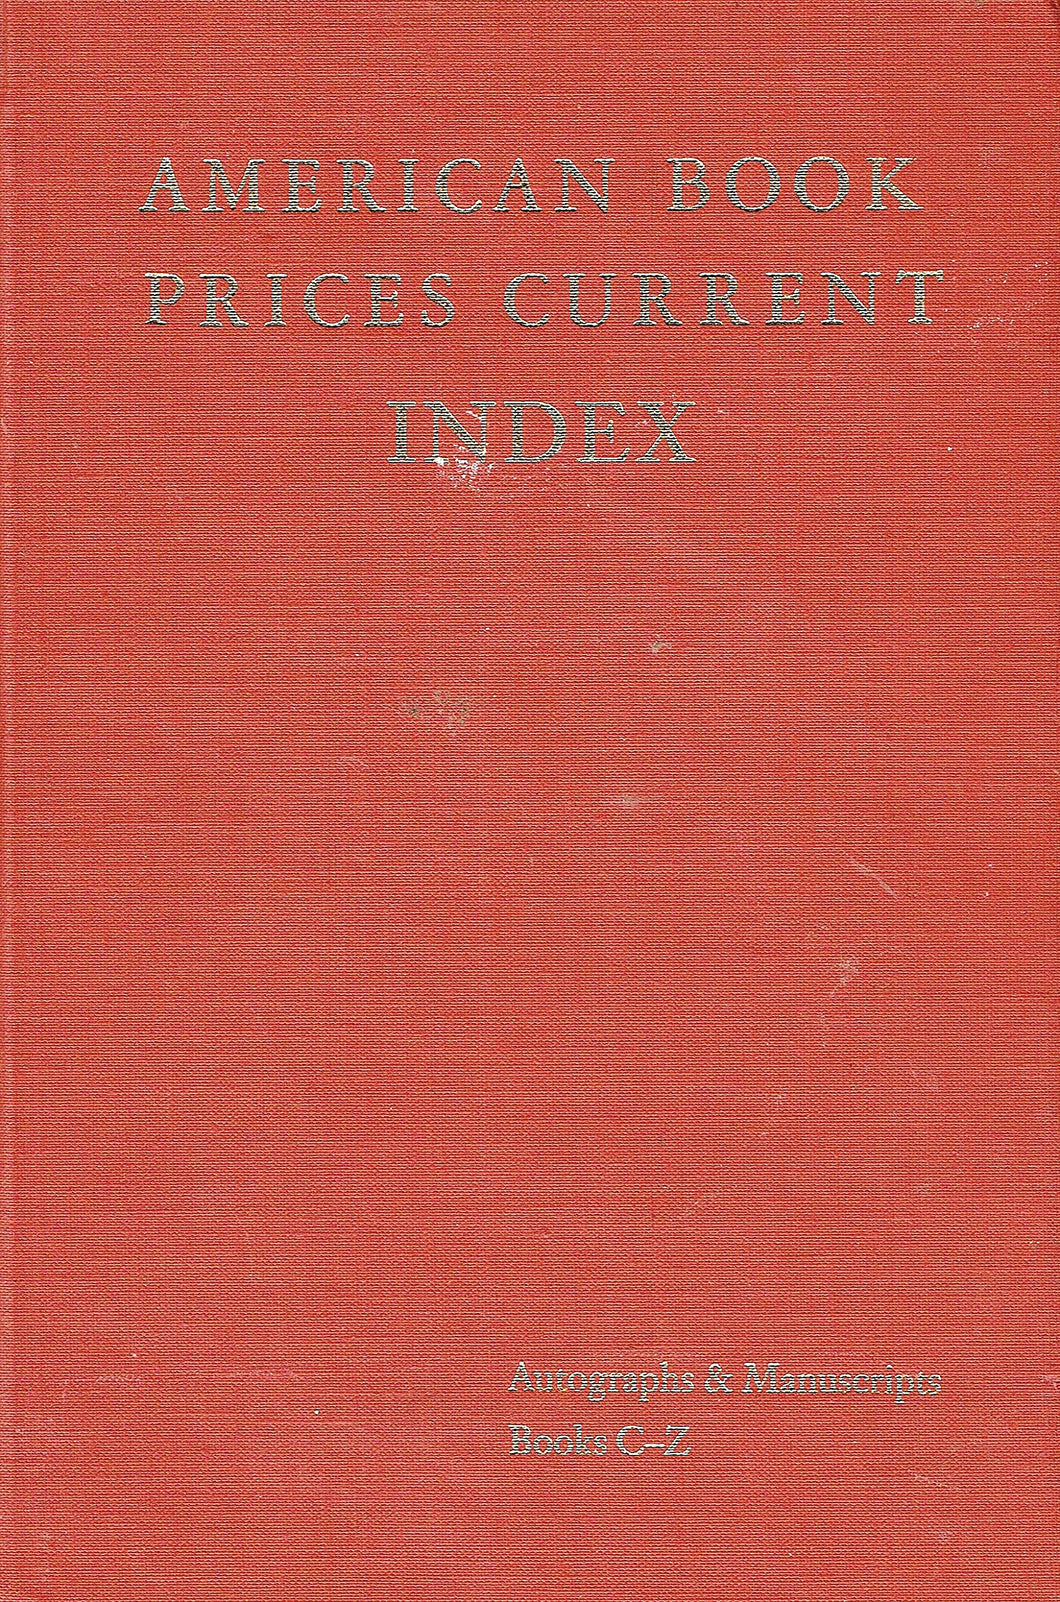 American Book Prices Current Index - Autographs & Manuscripts, Books C-Z, 1987-1991